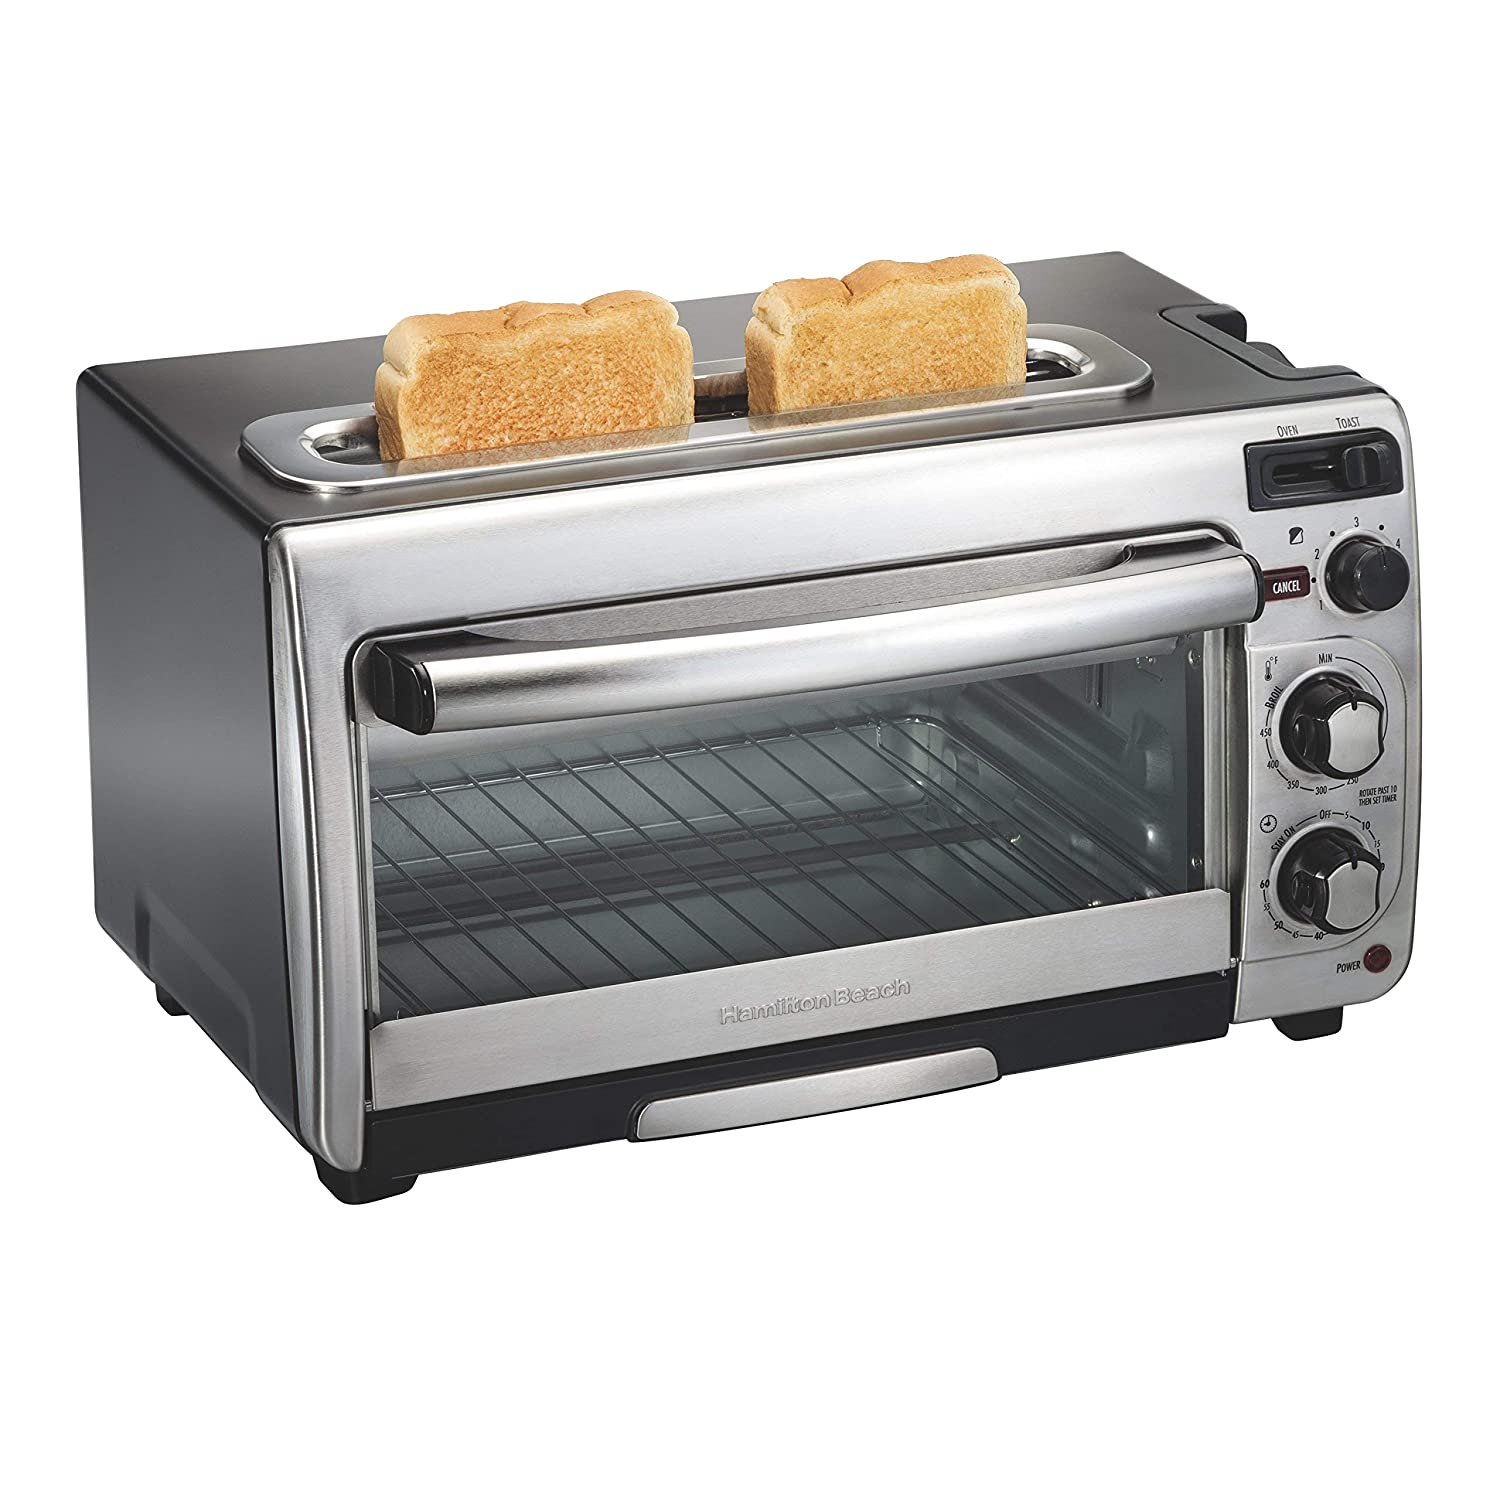 Hamilton Beach 2-in-1 Countertop Oven and Long Slot Toaster, Stainless Steel, 60 Minute Timer and Automatic Shut Off (31156), Large, (Renewed)